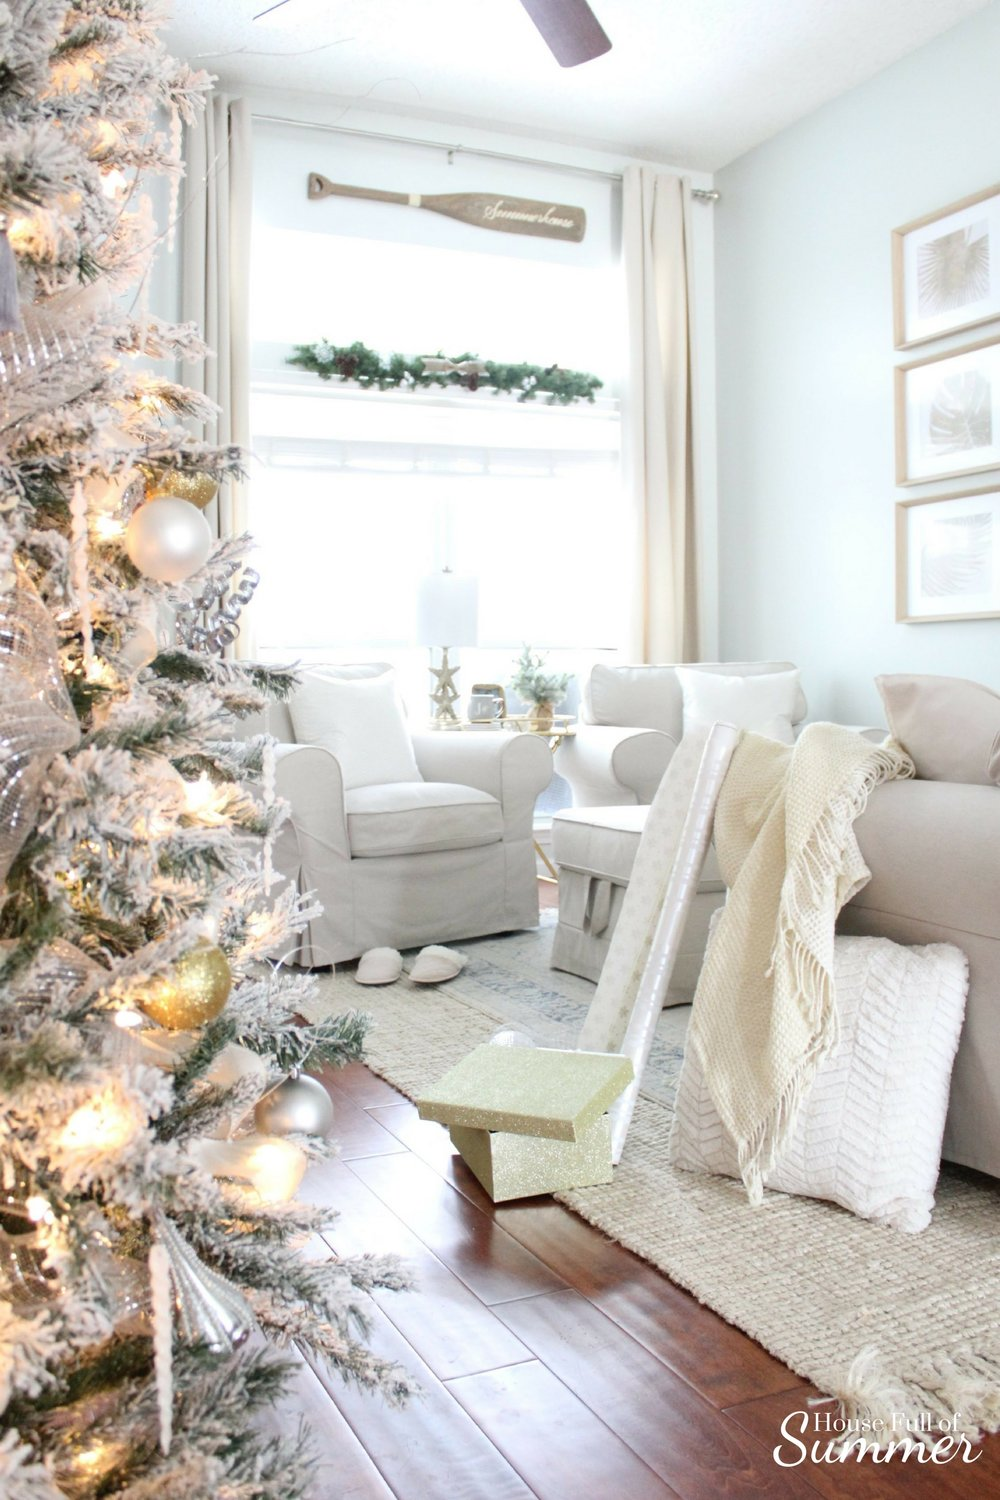 Christmas Home Tour | House Full of Summer blog hop - Cheerful Christmas Home Tourcoastal christmas neutral christmas decor, holiday home tour, florida christmas, living room, sitting room, slipcovered furniture, beach house, gold wrapping paper